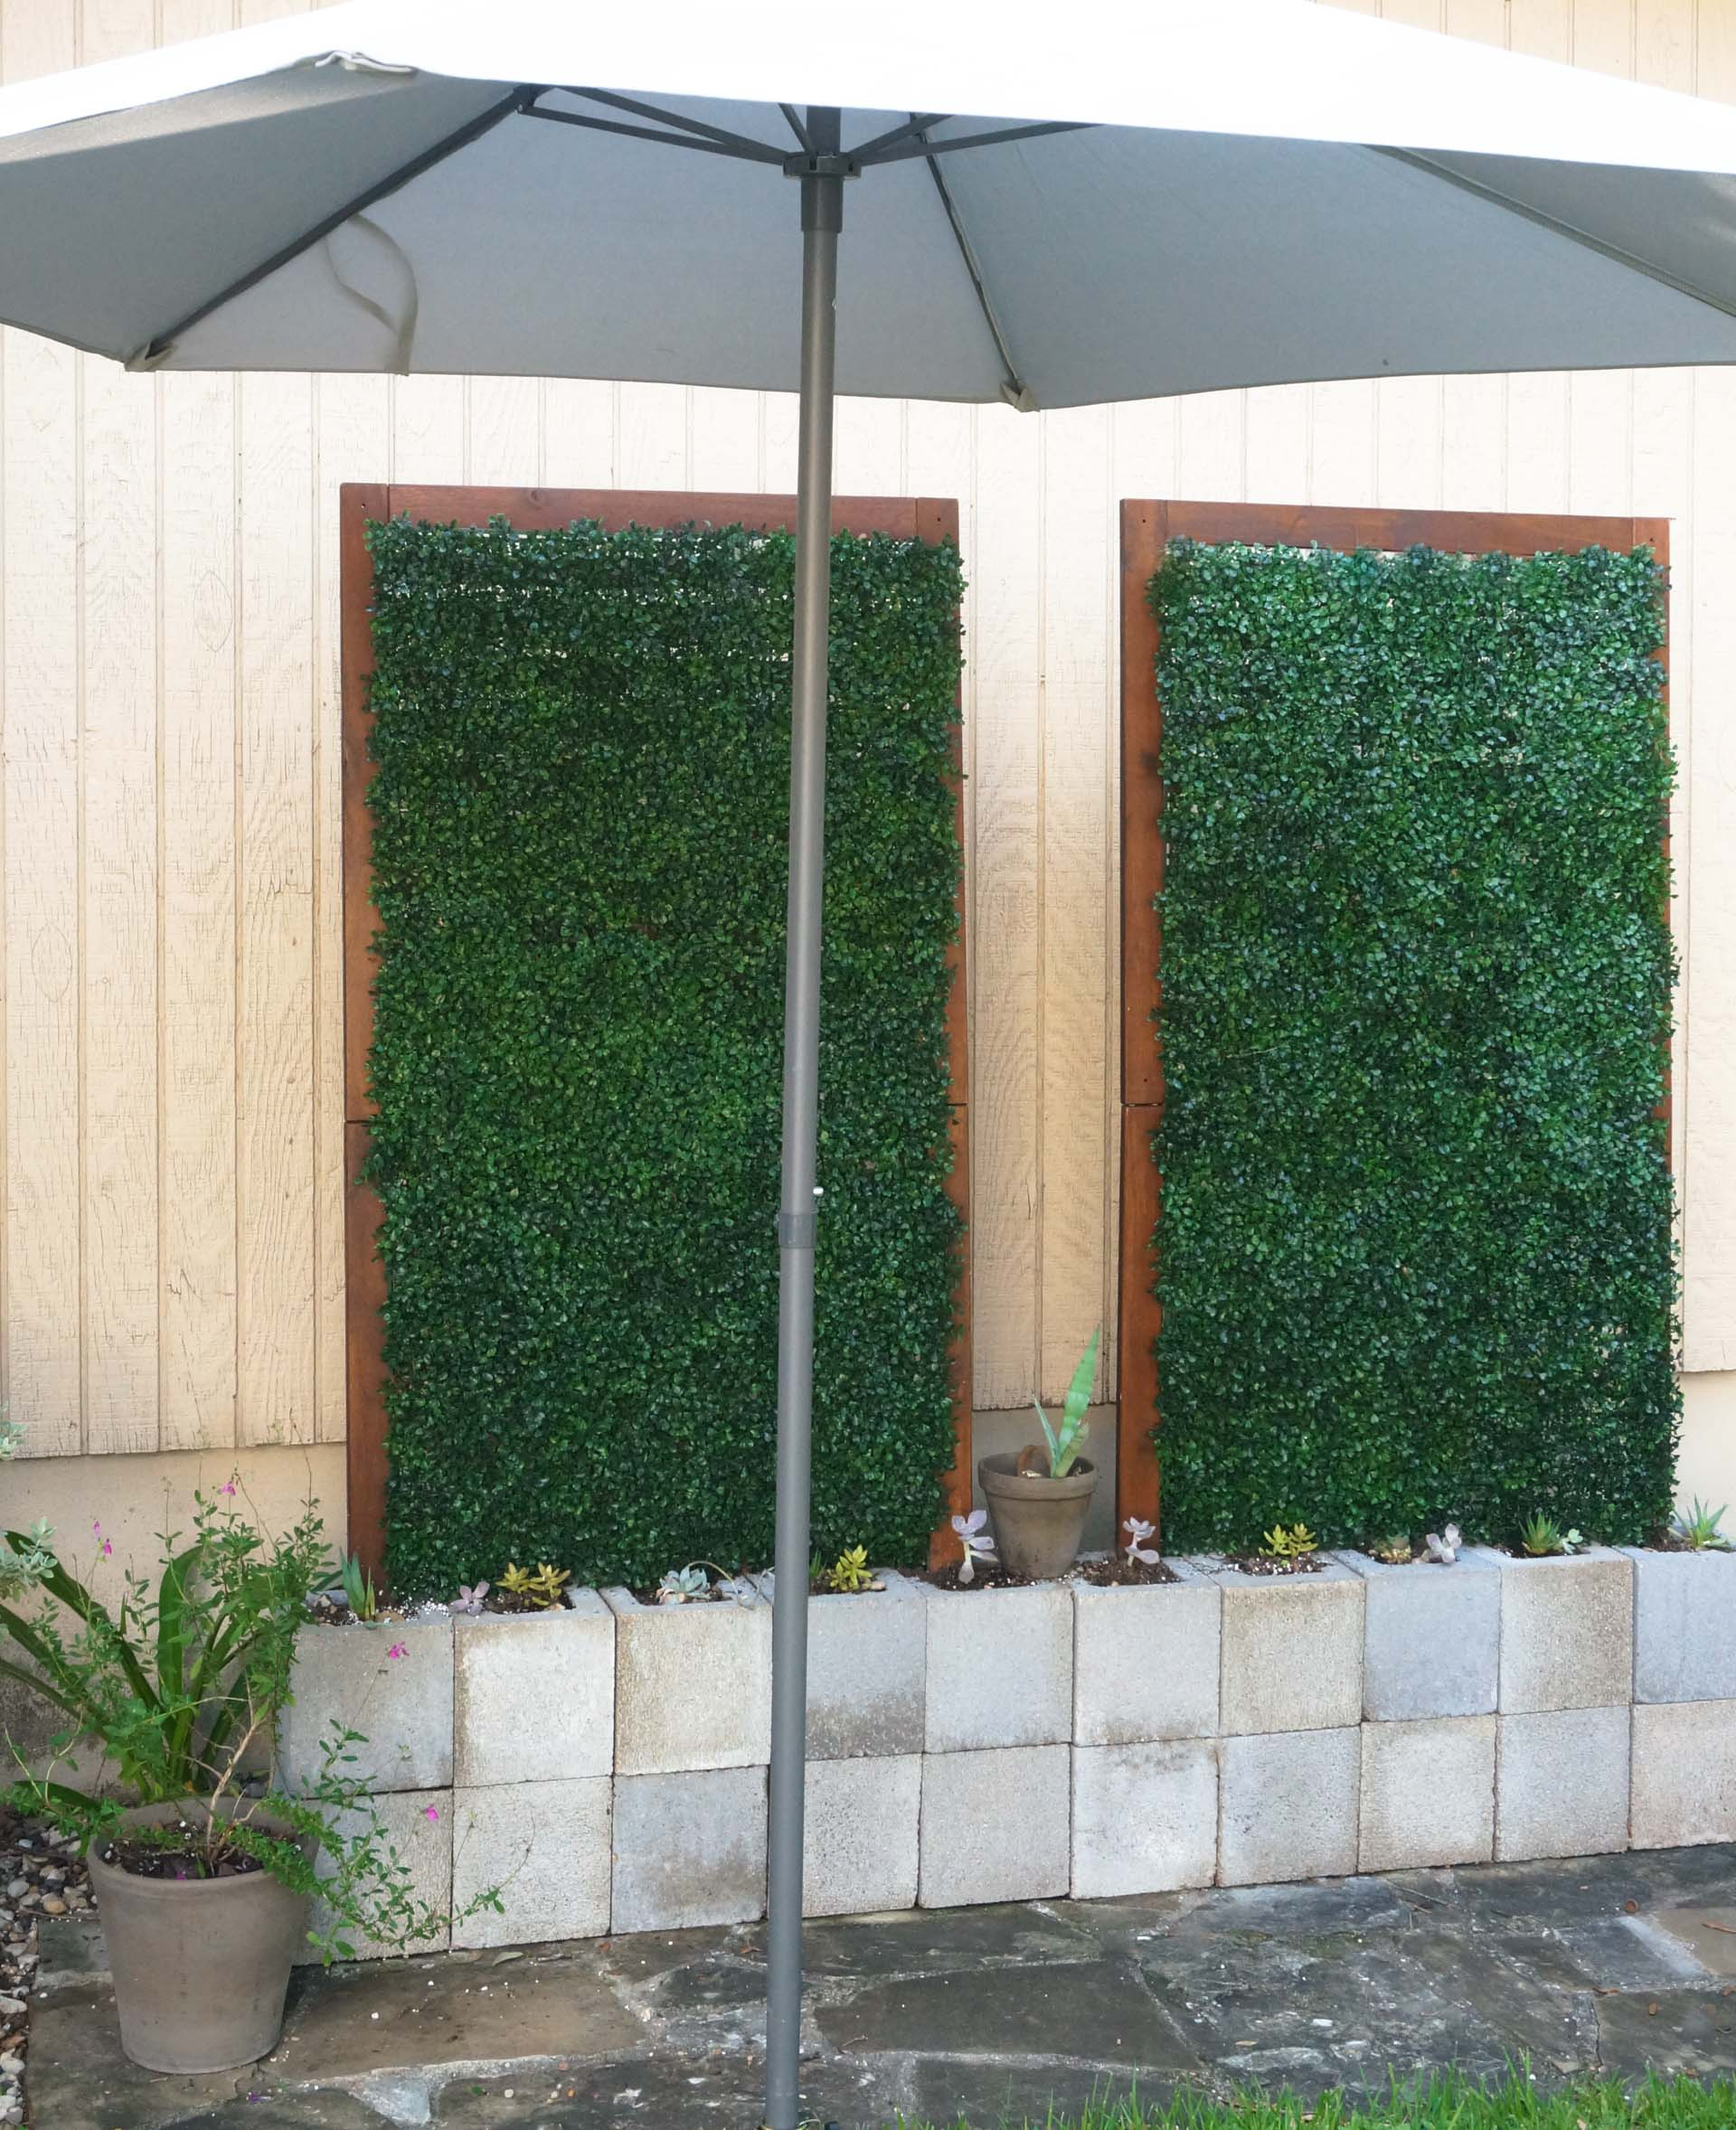 Outdoor trellises with boxwood vines